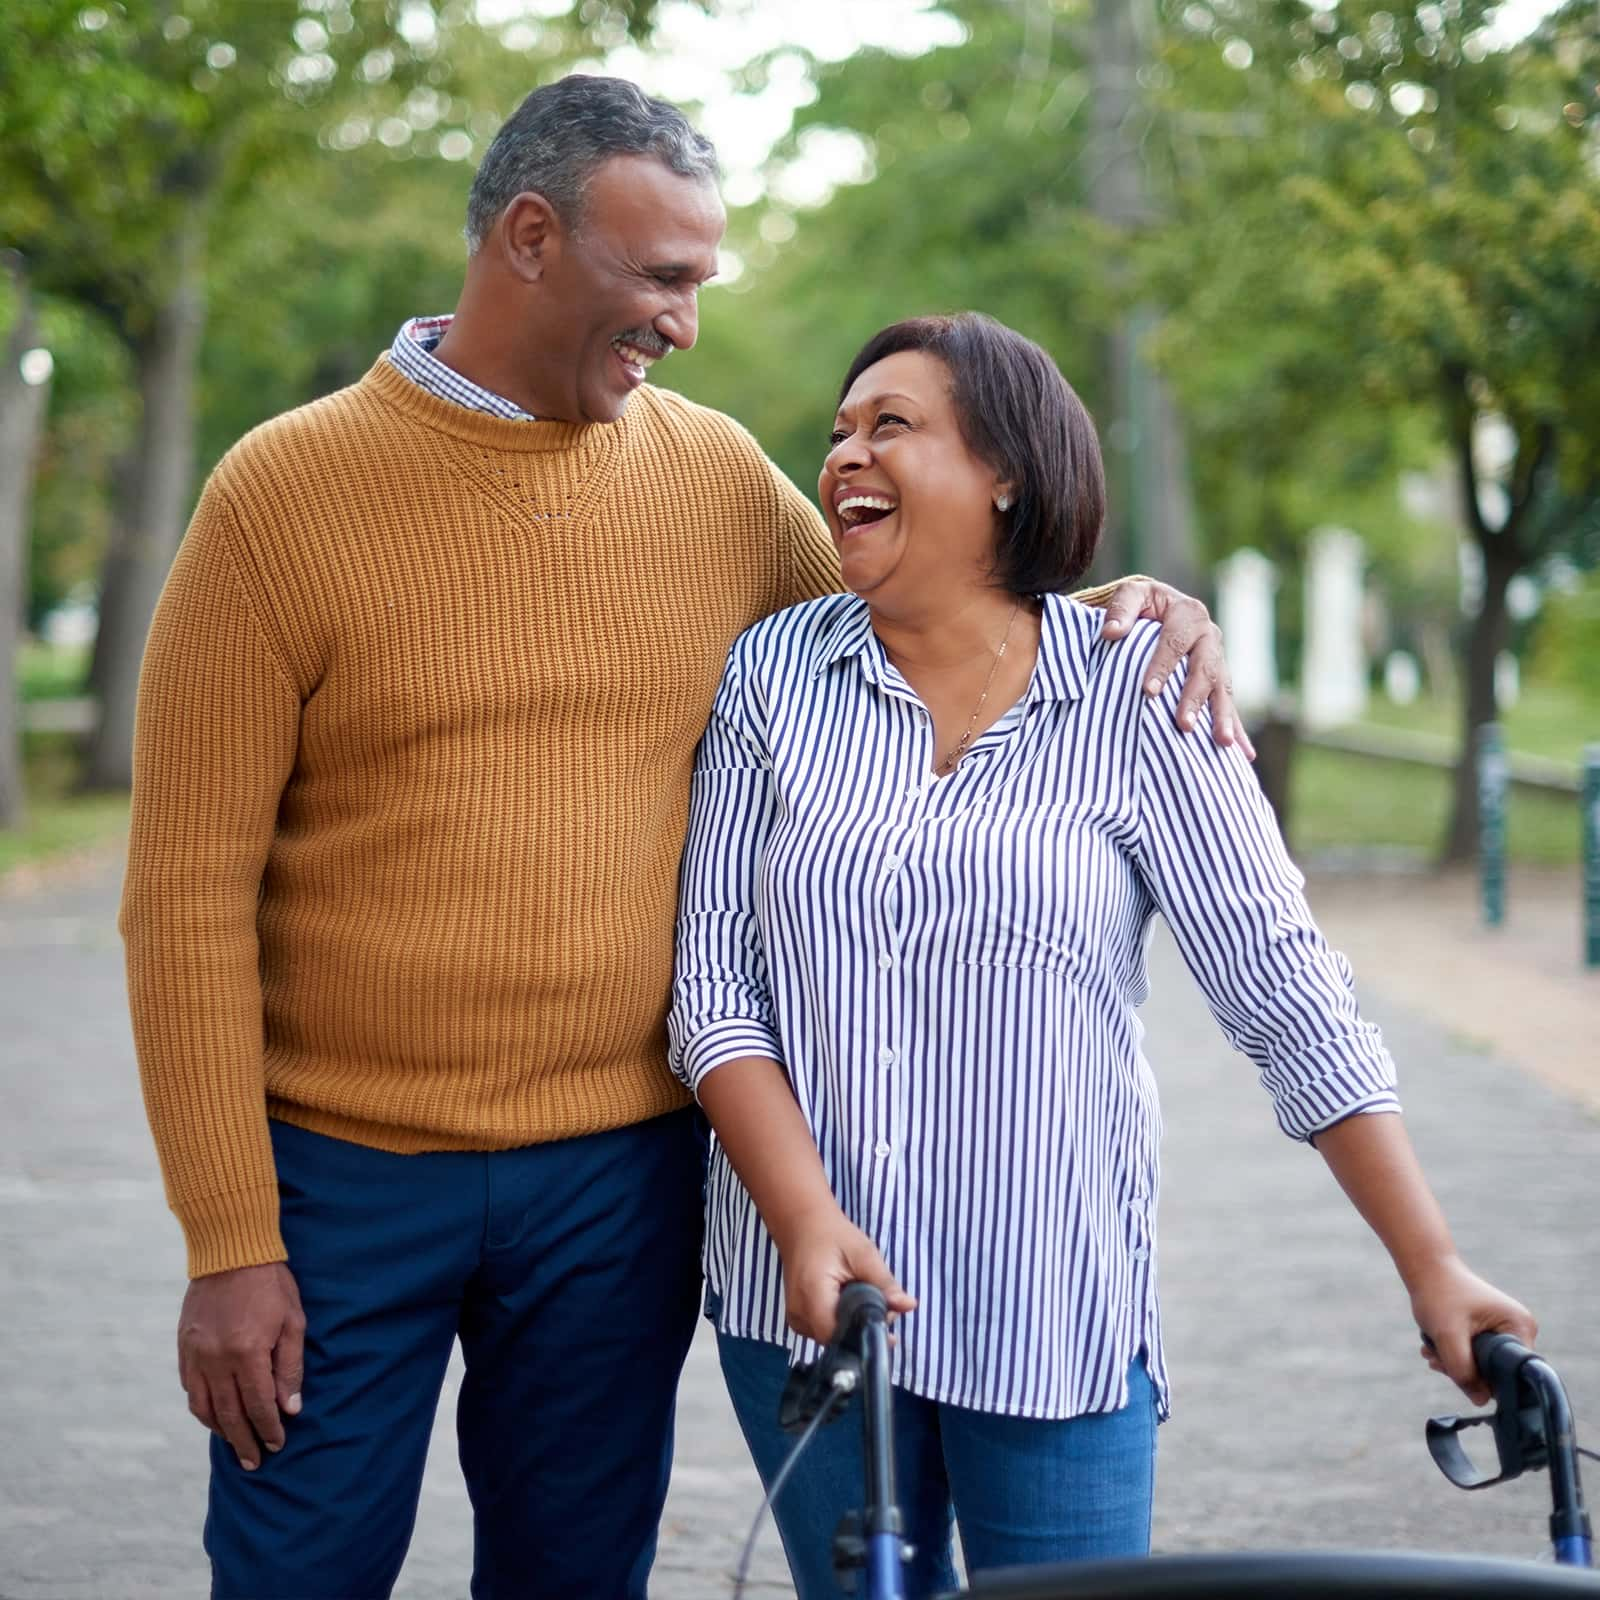 happy mature woman using a walker while in the park with her smiling mature husband